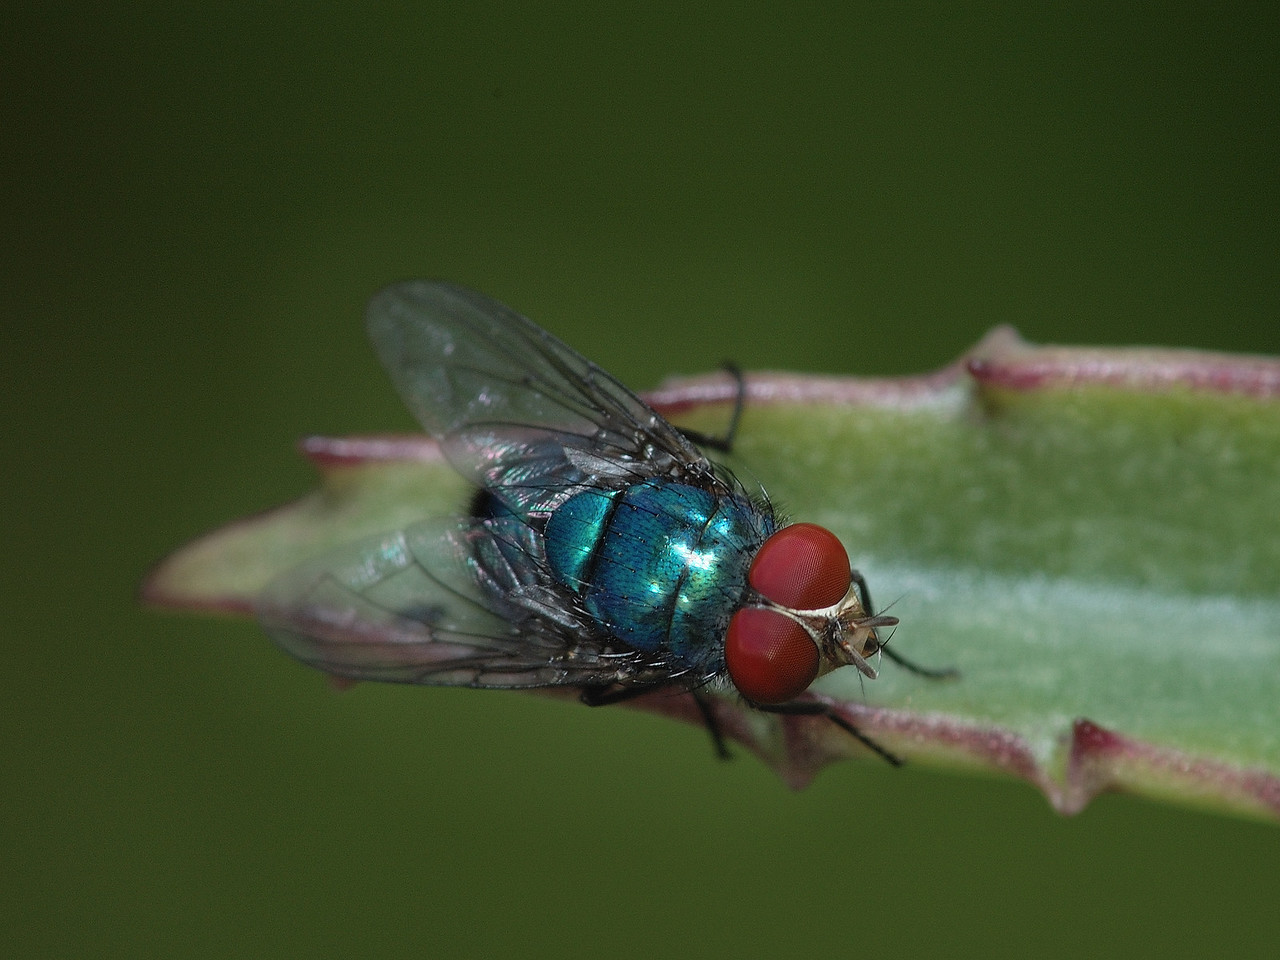 Bermuda: macrophotogaphy d'une mouche / Macrophotography of a fly